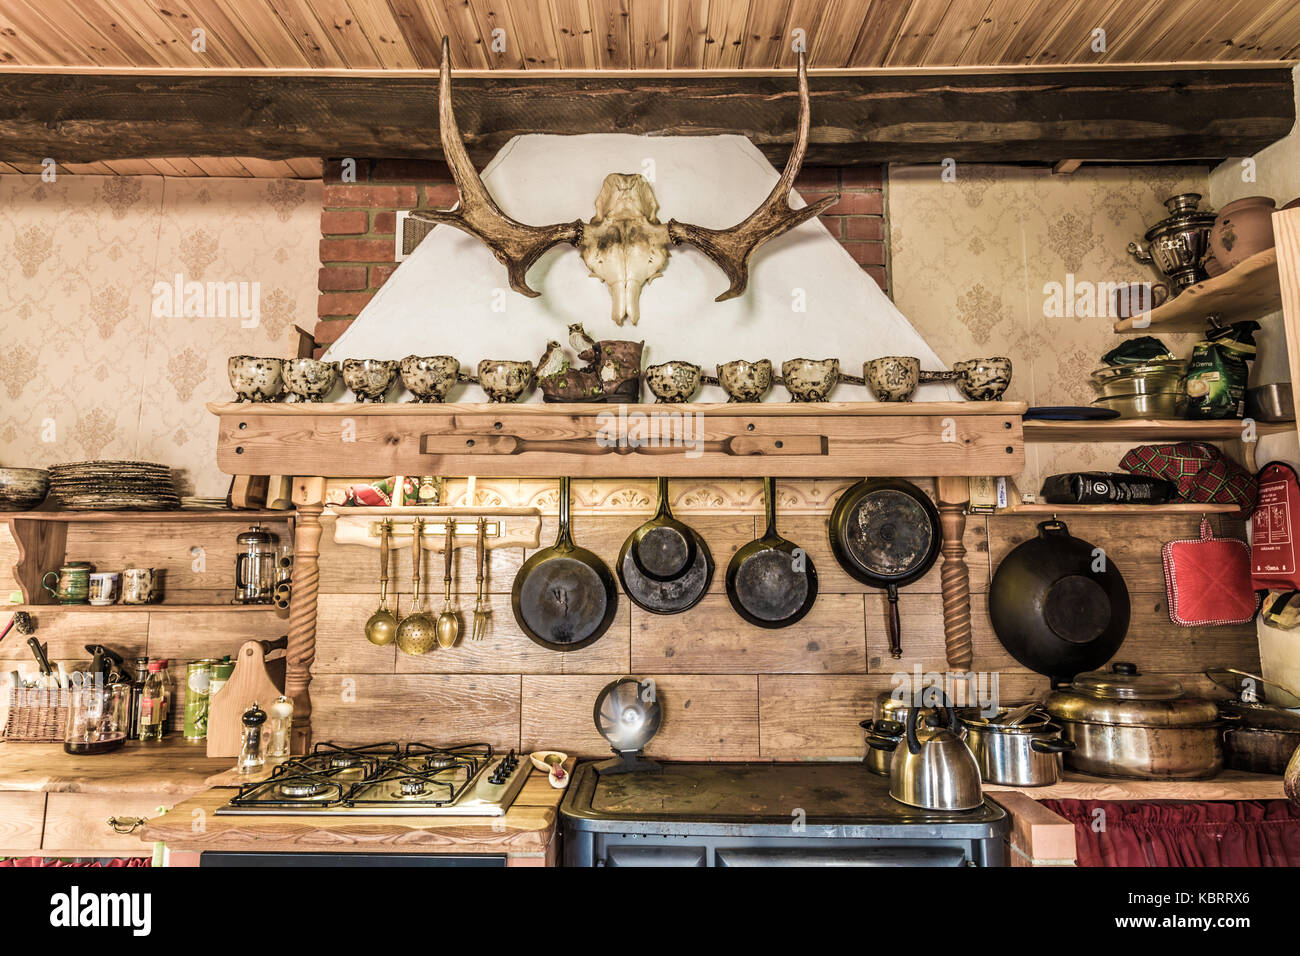 Rustic style kitchen with pots and pans - Stock Image